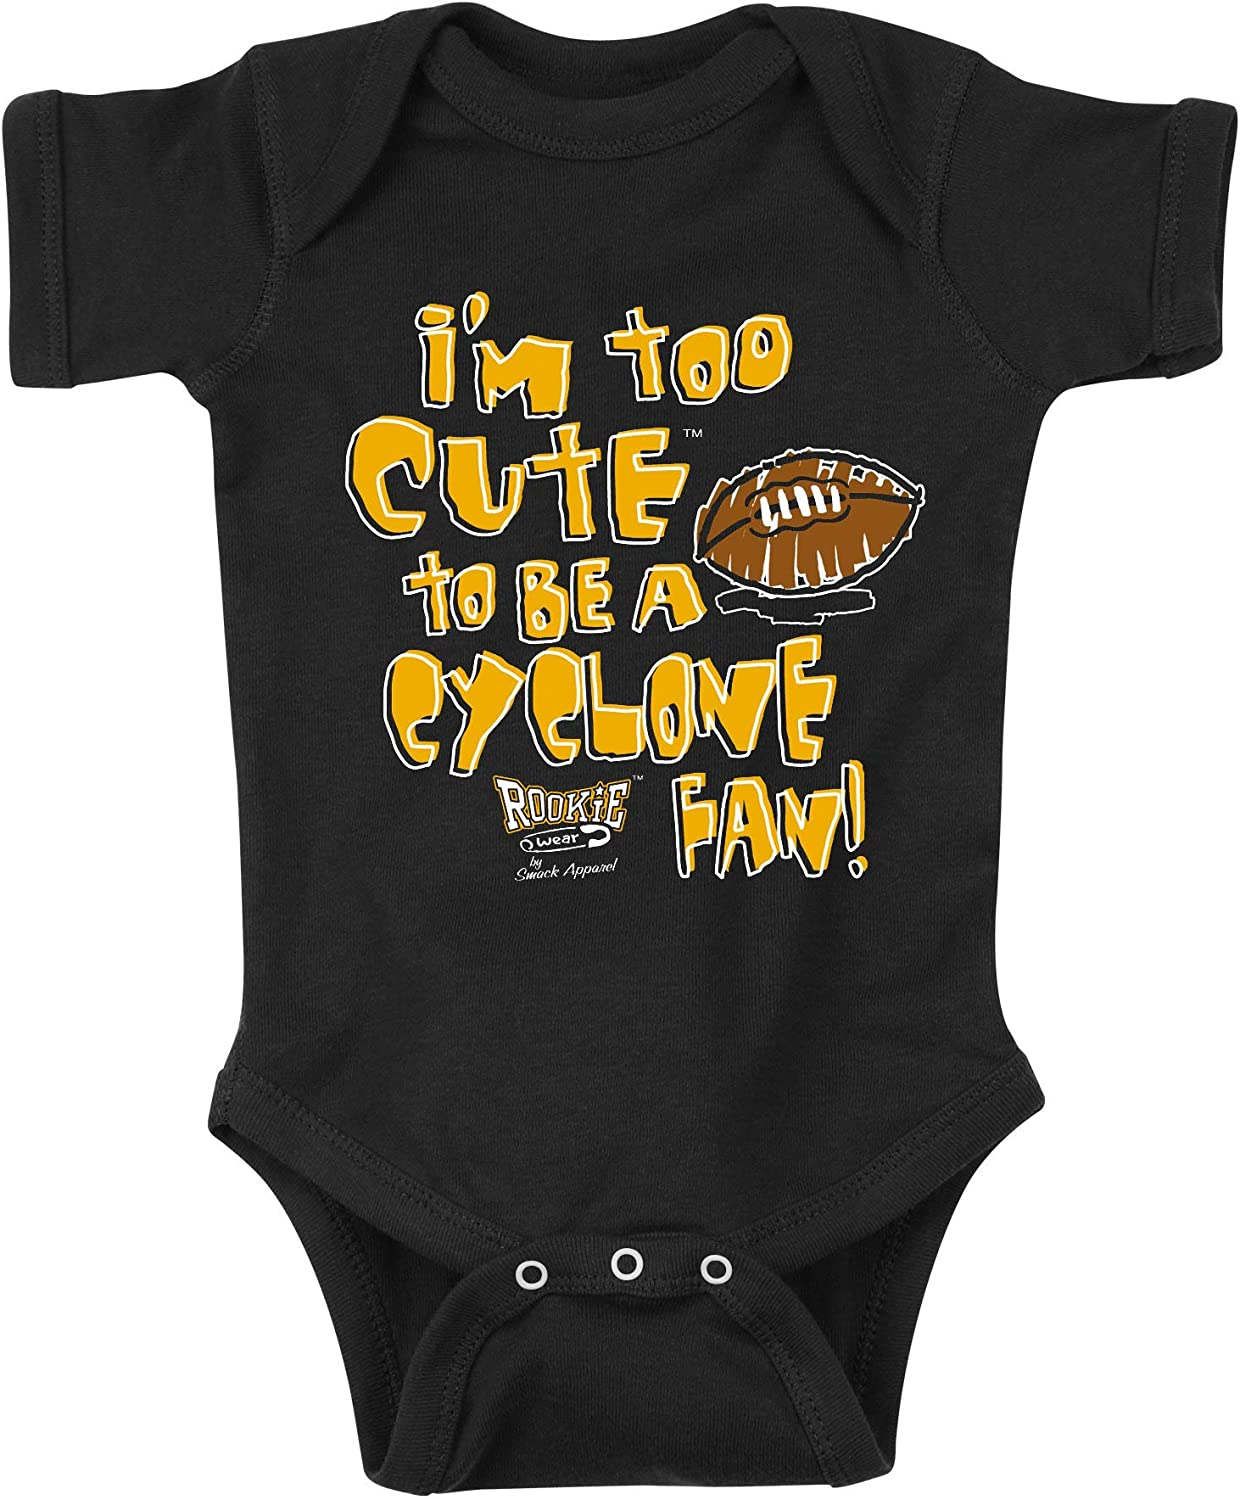 Black Onesie or Toddler Tee Im Too Cute to be a Cyclone Fan NB-4T Smack Apparel Iowa Football Fans